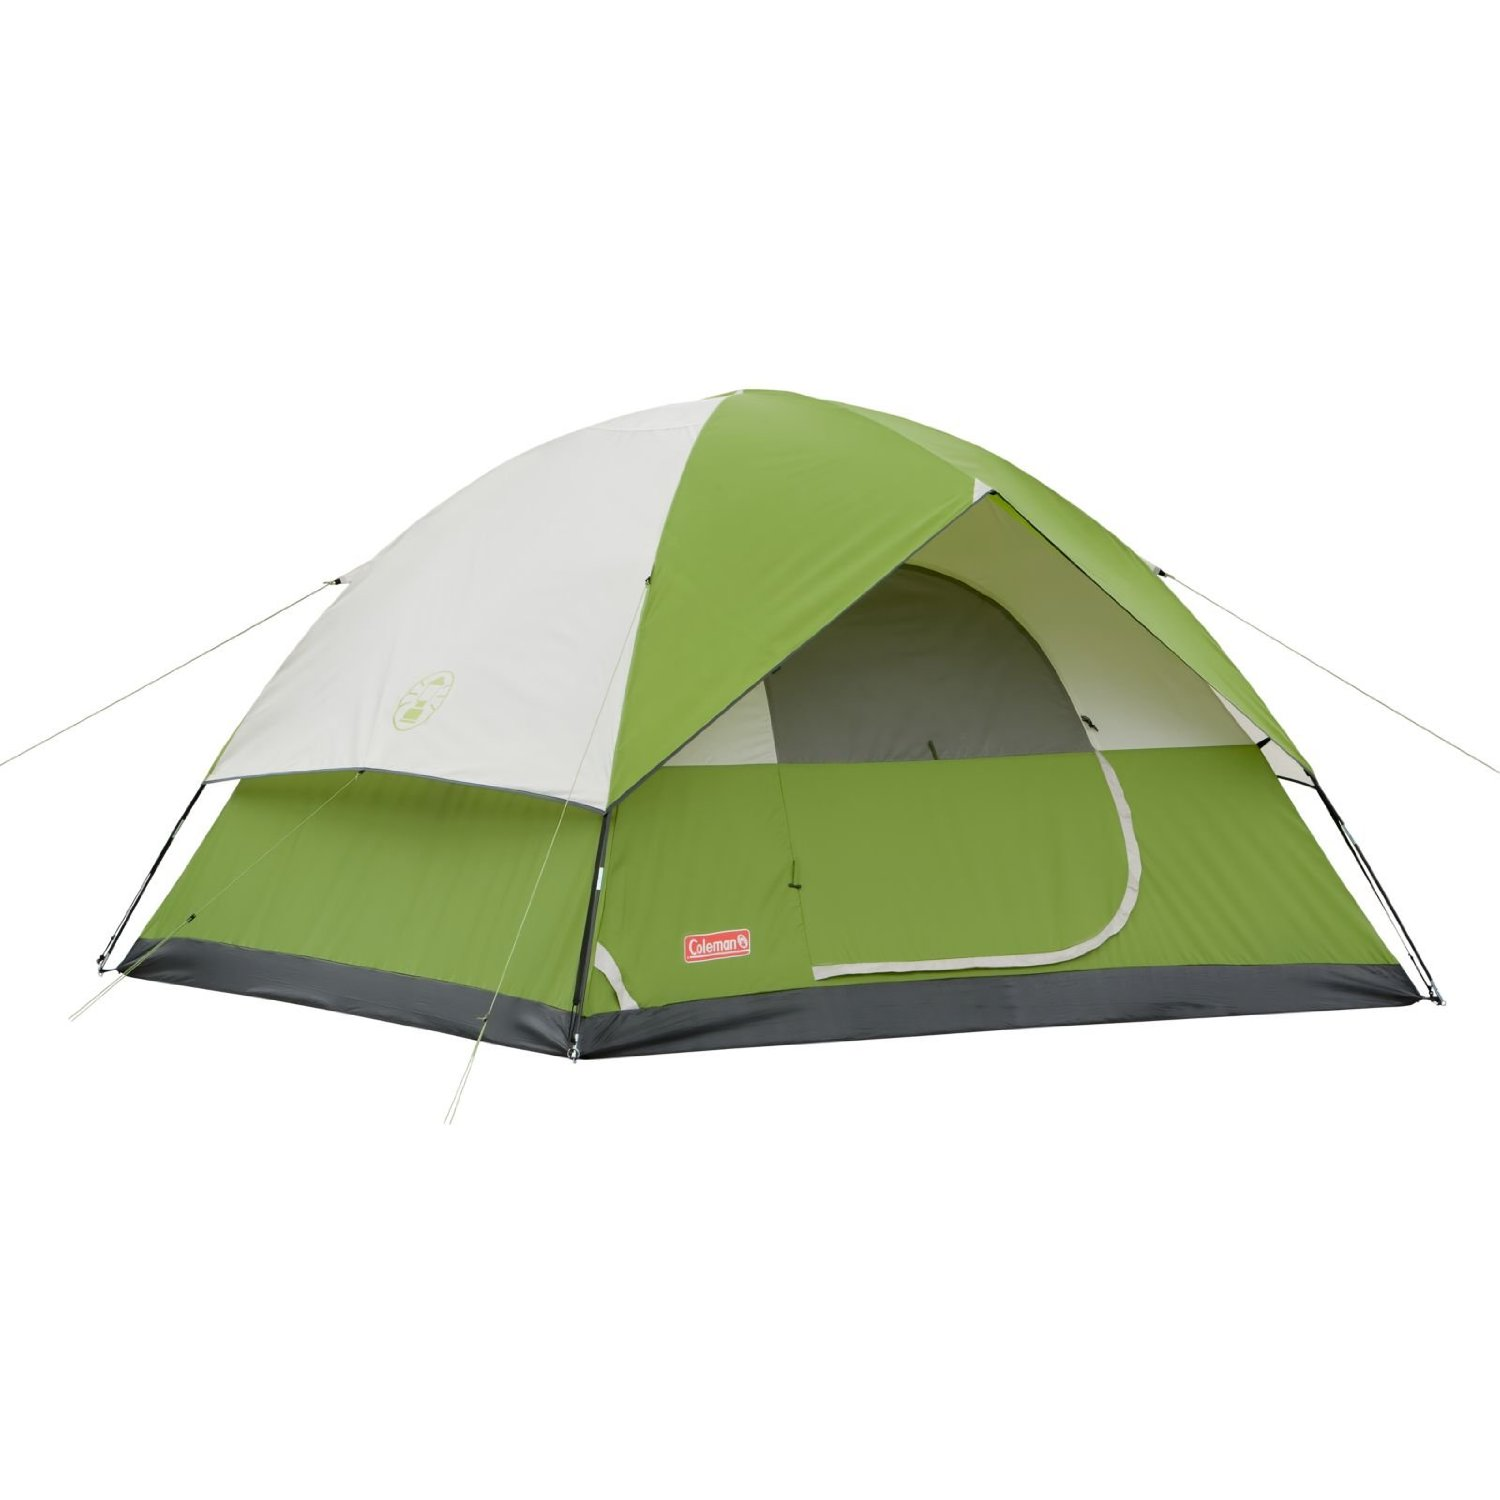 Sundome 6 Person Tent  sc 1 st  Koiyaki Guiding School & Best Family Tent For Camping in 2018 - KOIYAKI.COM